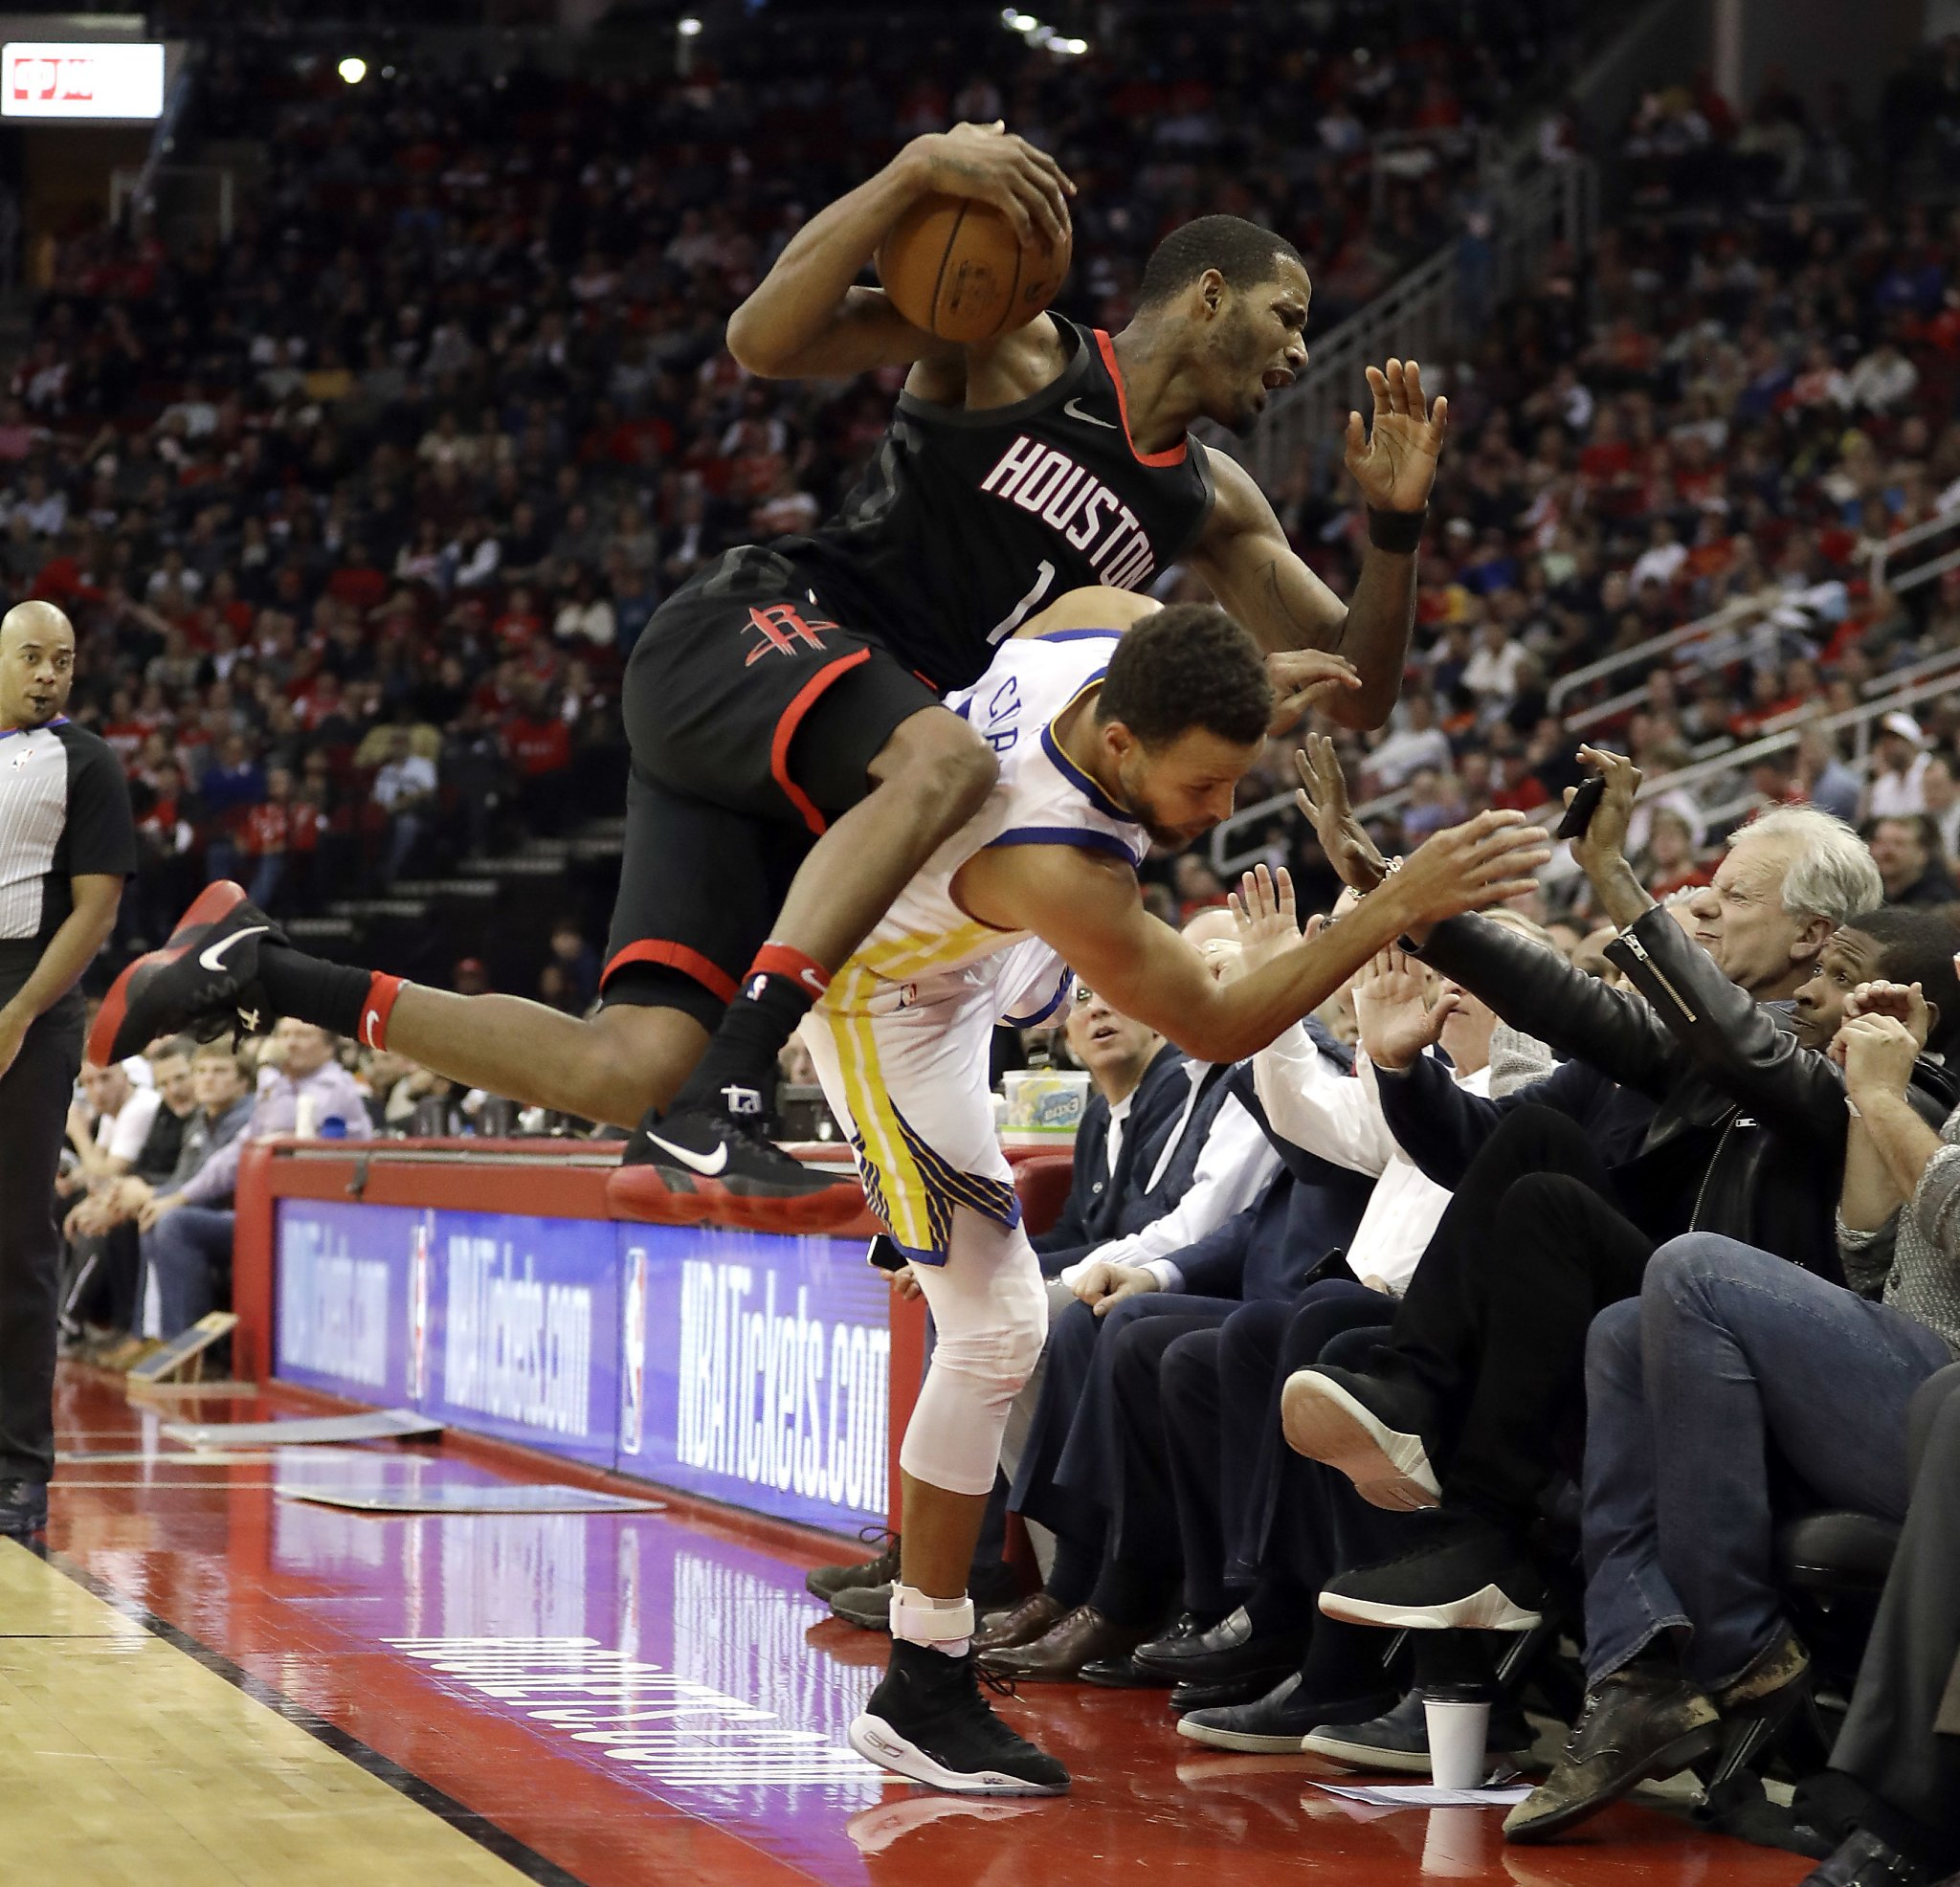 Houston Rockets Record 2018: Steph Curry And Usher Collision During Warriors Game Sends